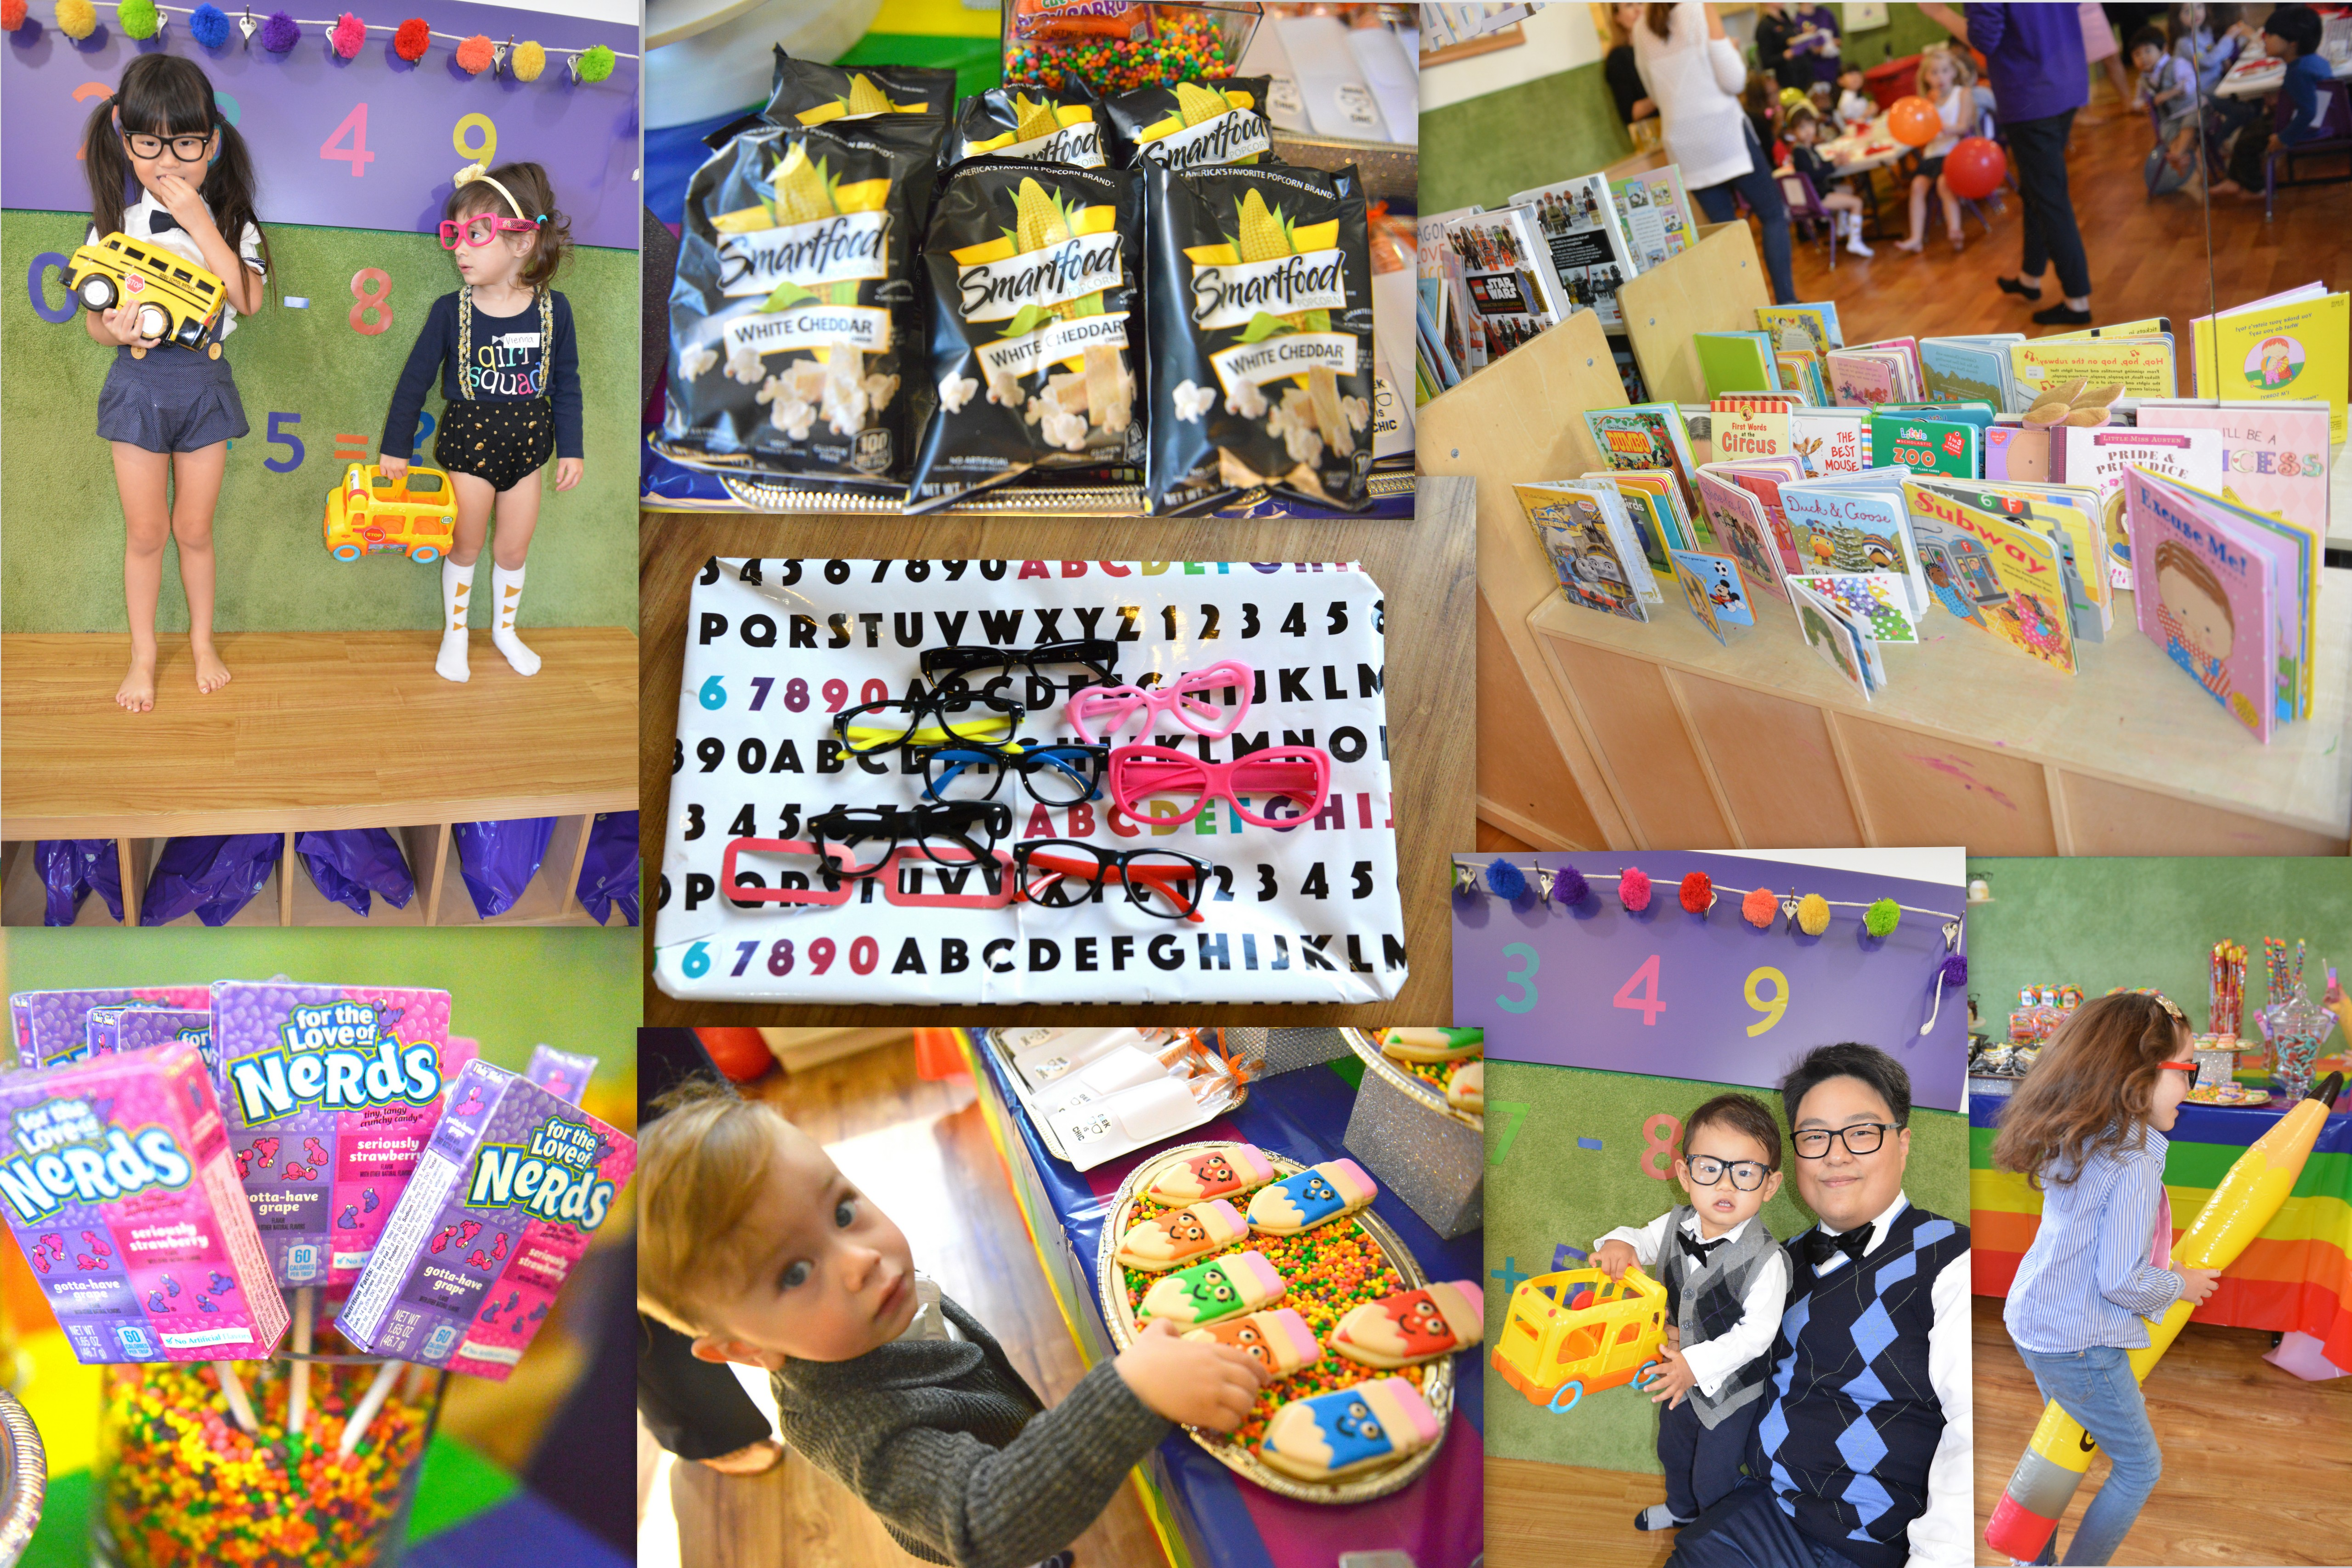 back to school bash, nerdy party, geek chic party, school is cool party, kids party ideas